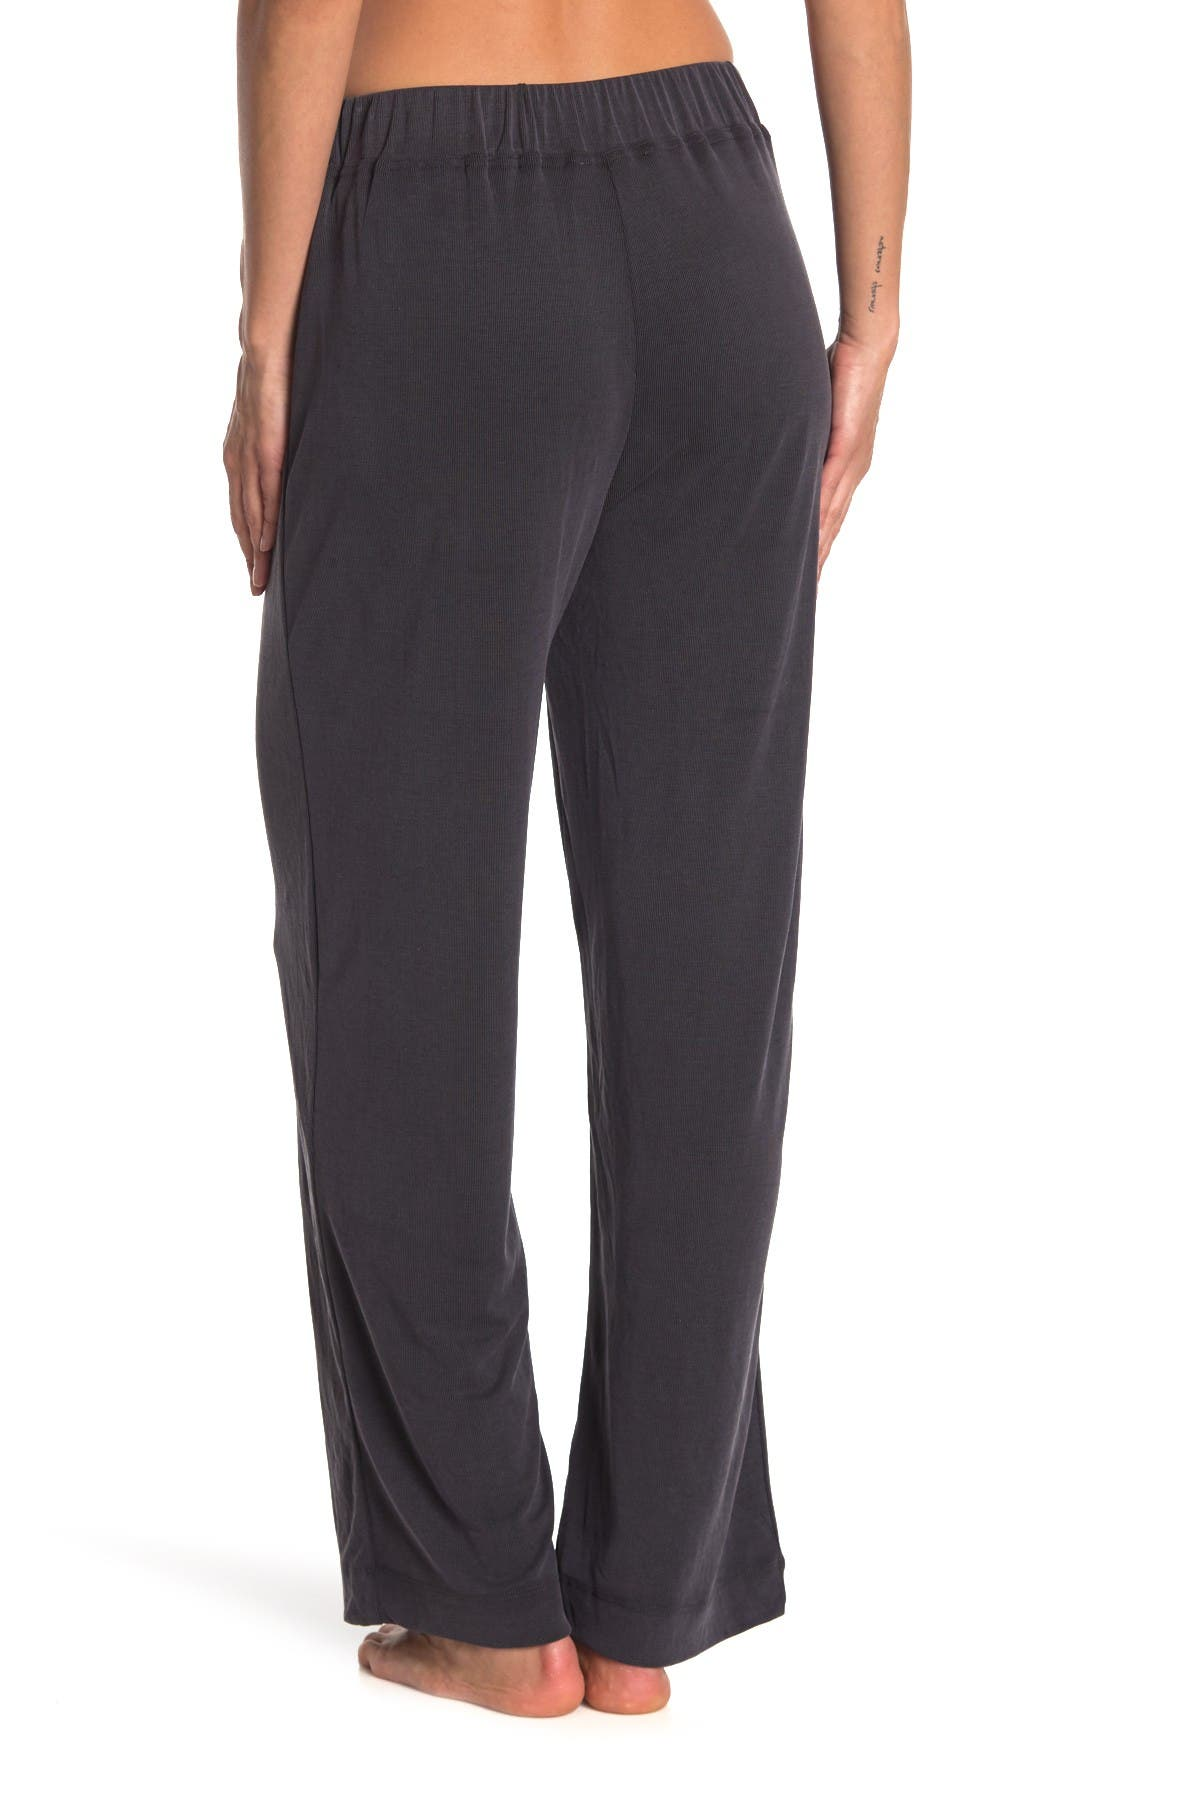 Image of Philosophy Apparel Ribbed Knit Pull-On Wide Leg Pants